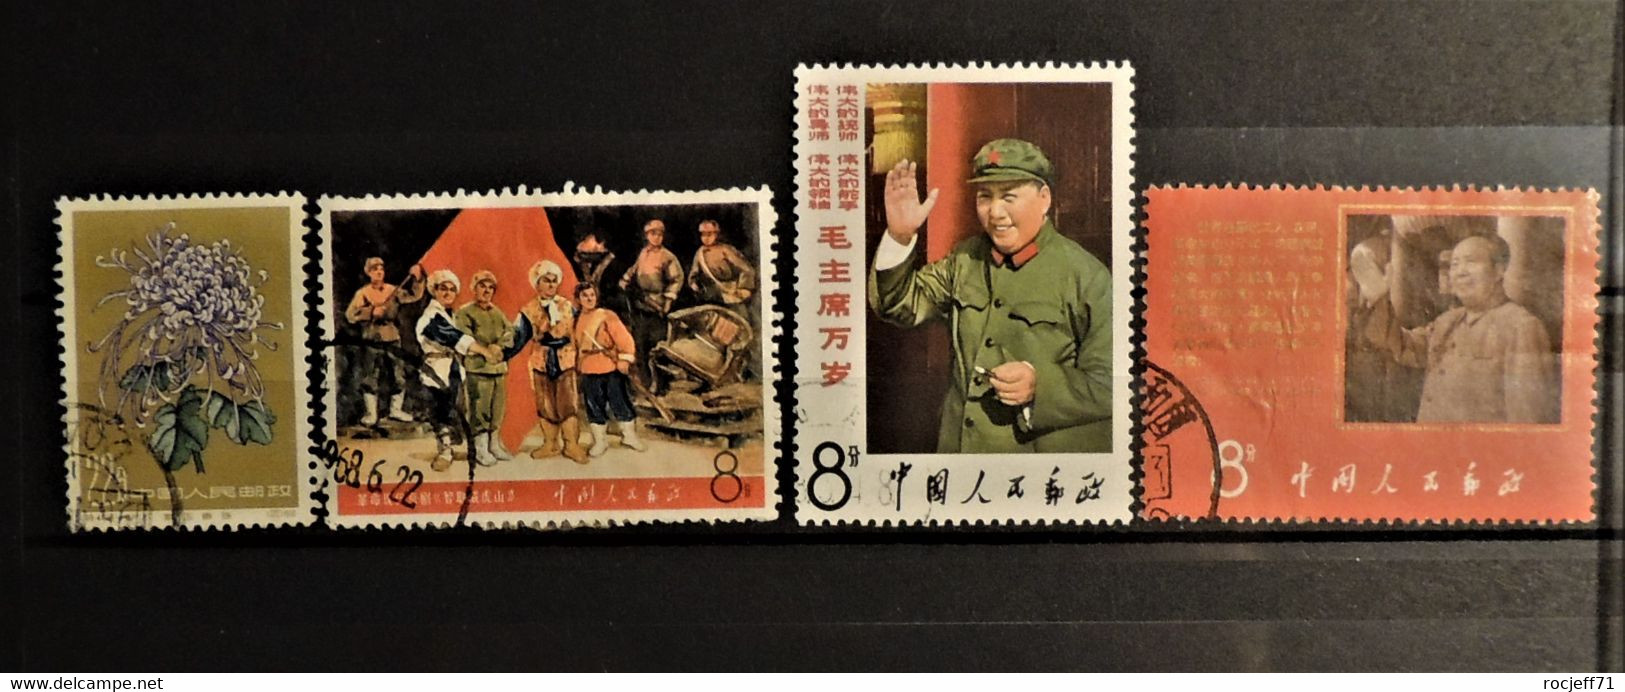 11 - 20 -  China - Chine - Mao Stamps - Used Stamps